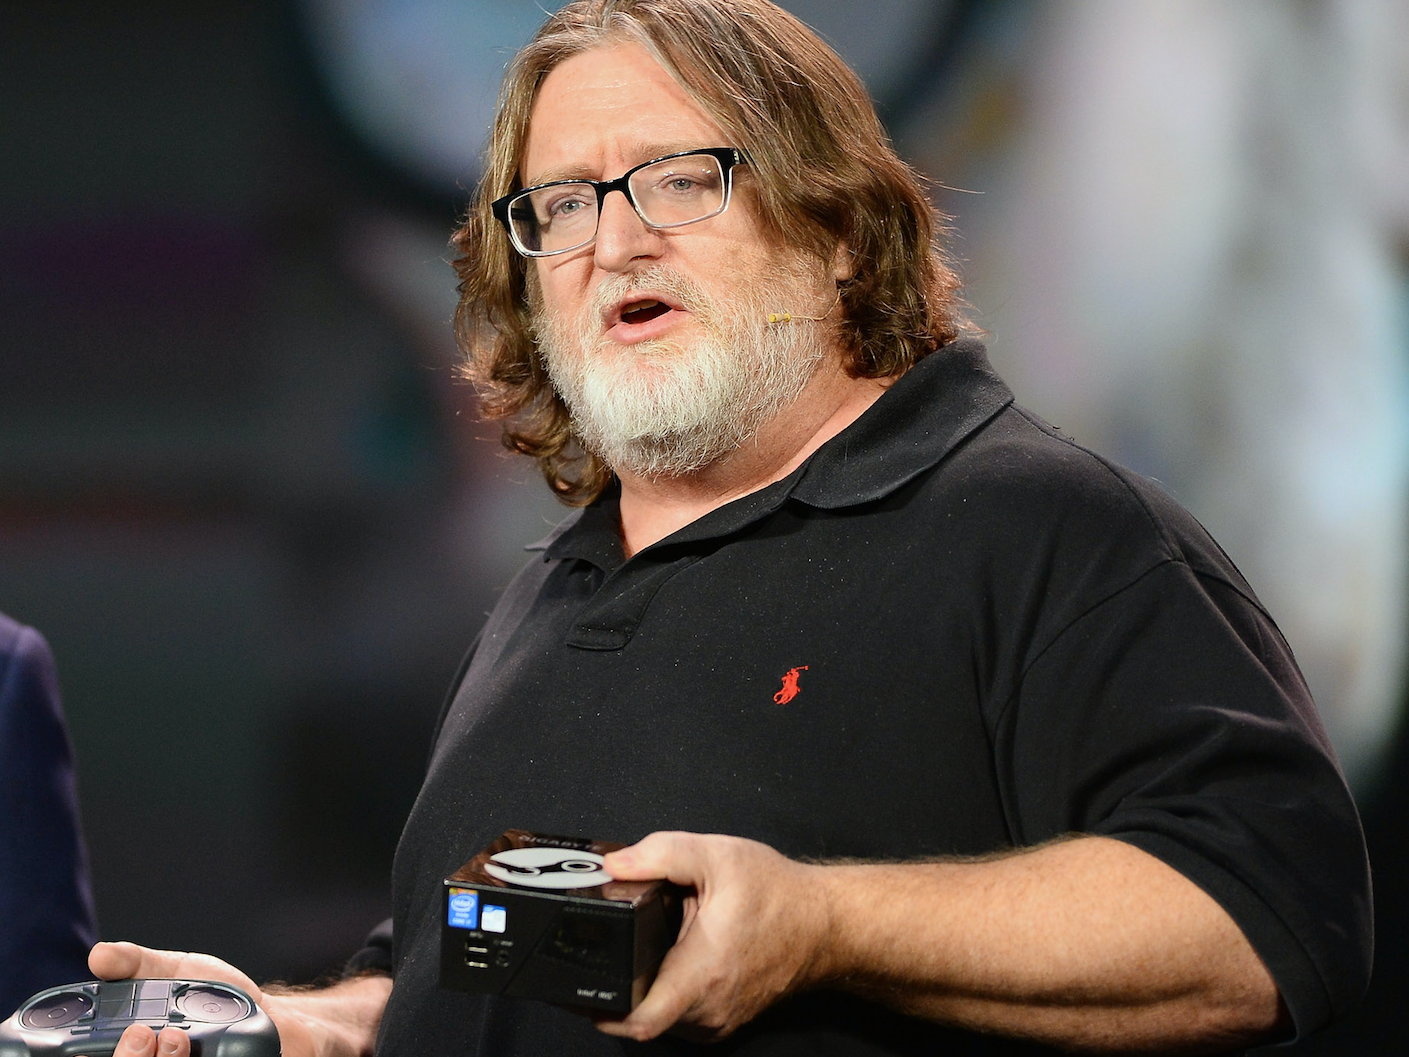 Gabe Newell Steam Valve